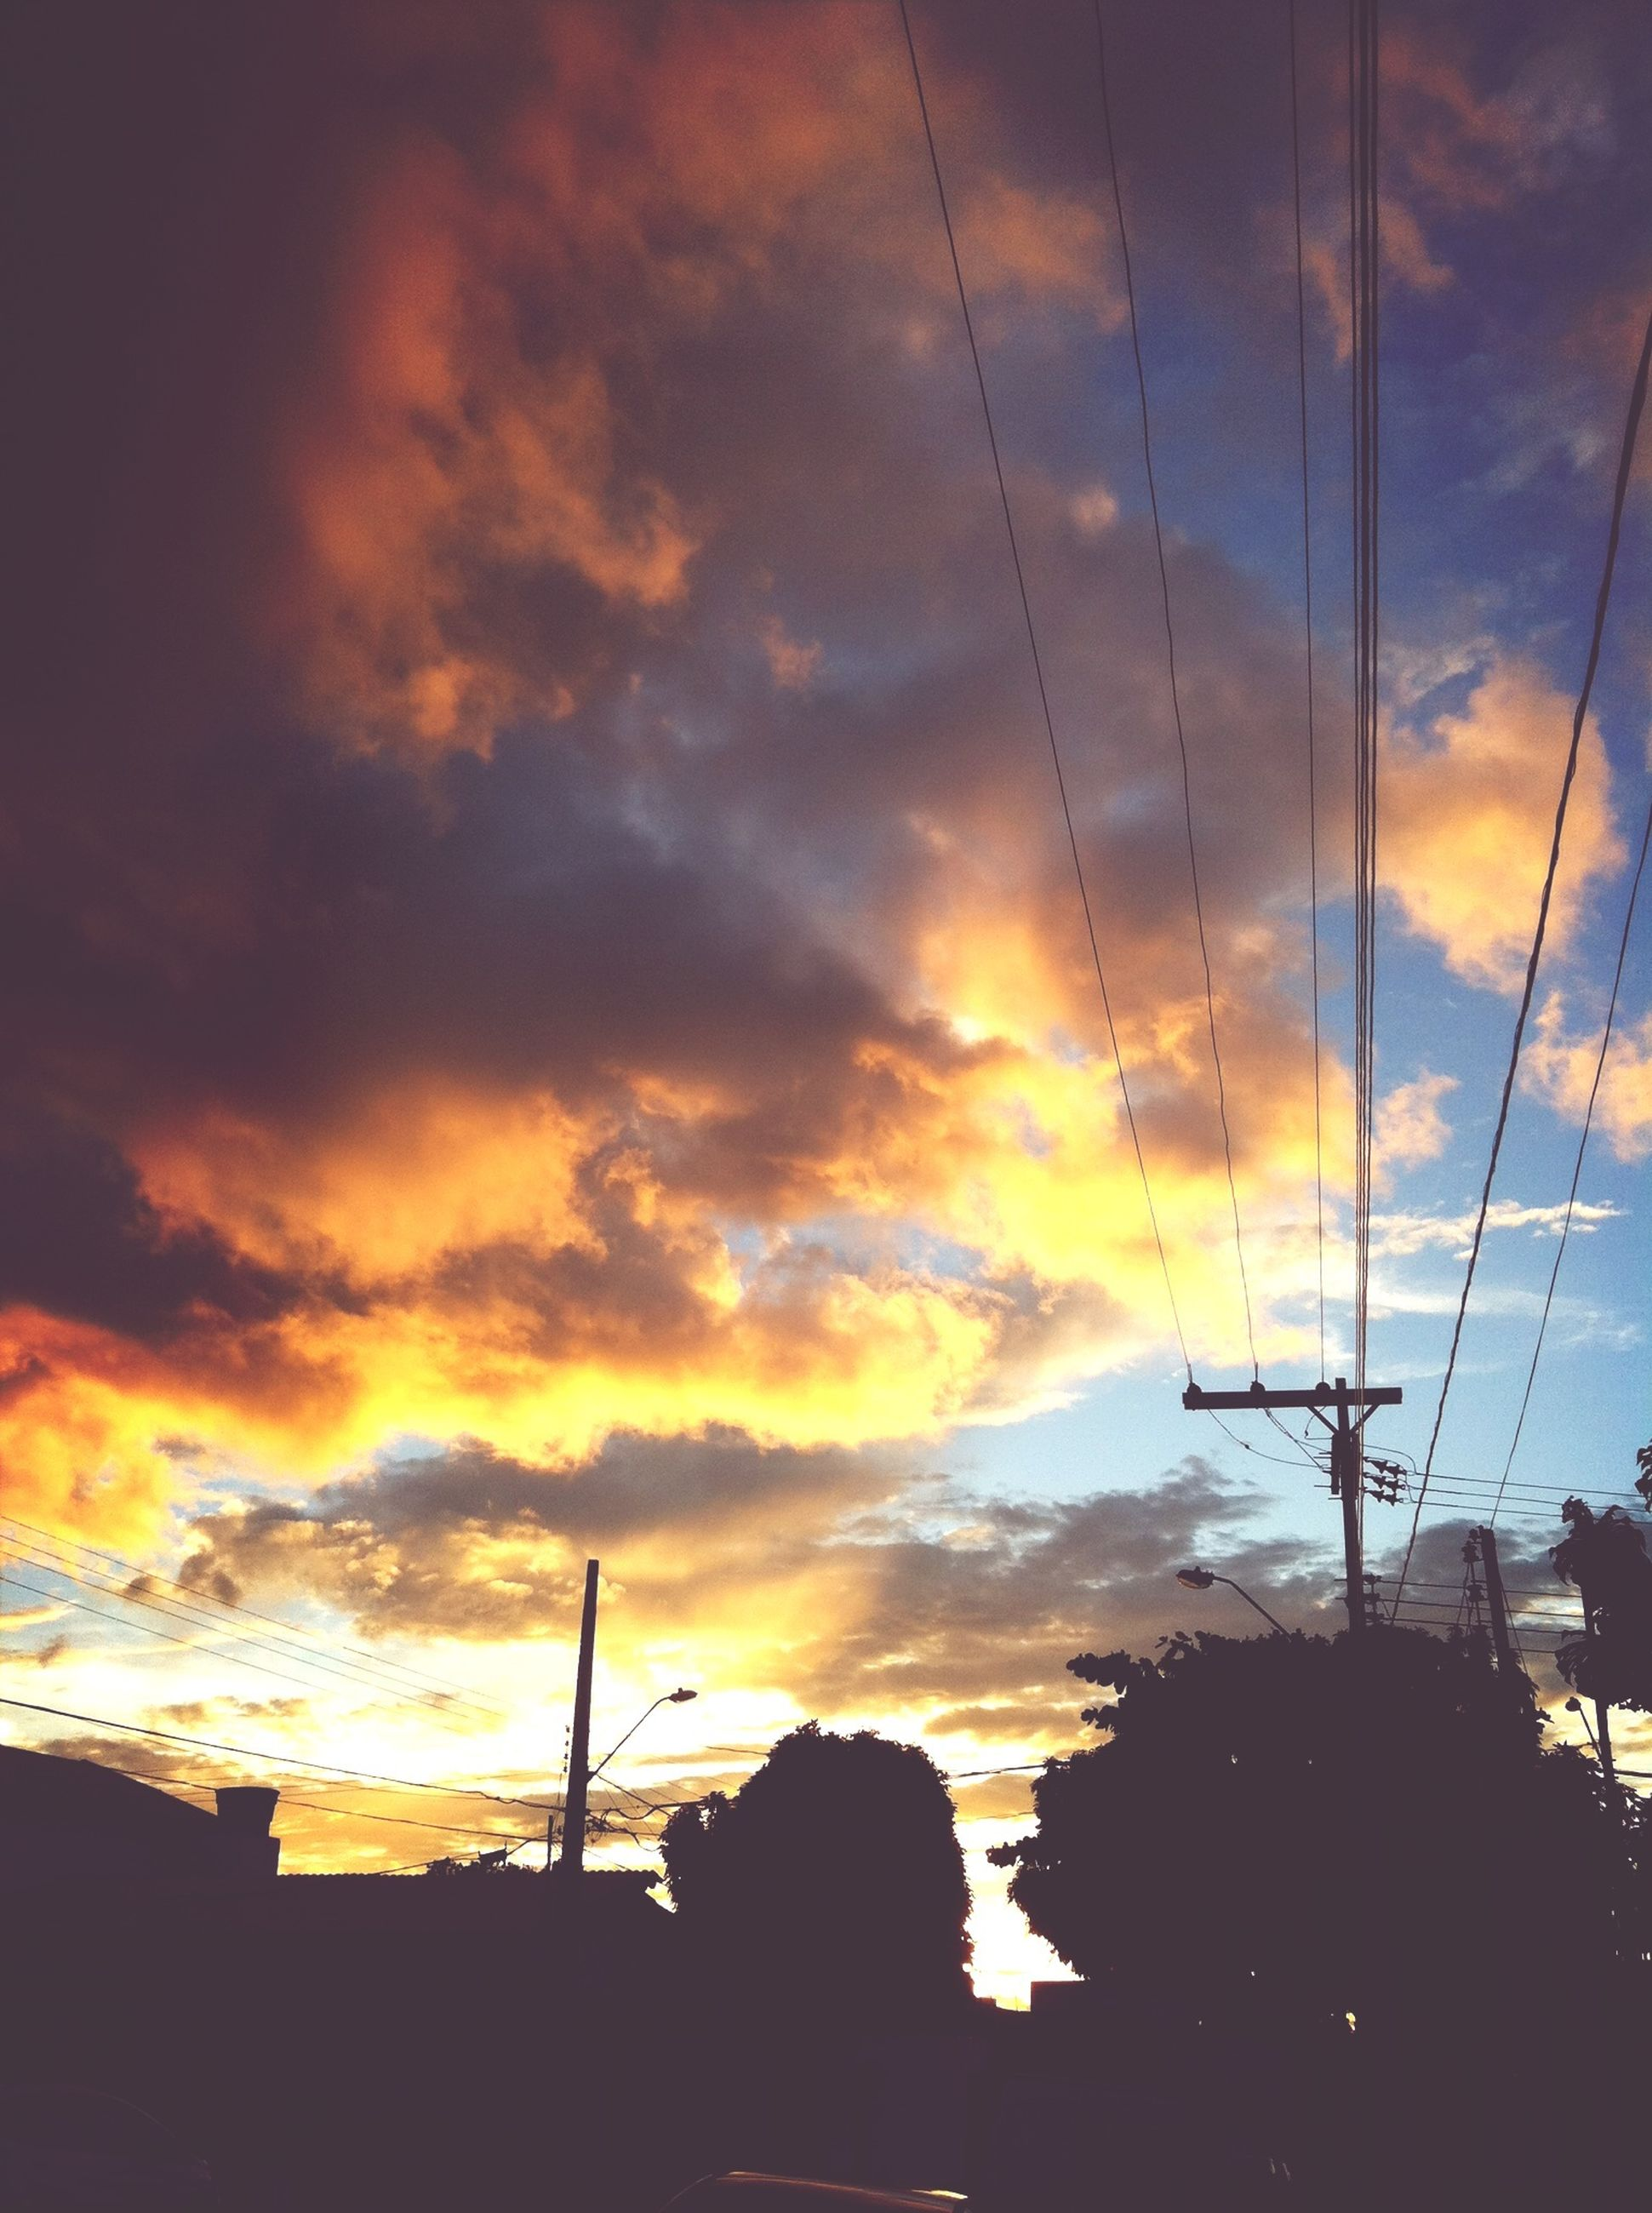 sunset, sky, orange color, cloud - sky, silhouette, architecture, built structure, building exterior, low angle view, cloudy, power line, cloud, dramatic sky, electricity pylon, beauty in nature, street light, nature, outdoors, scenics, no people